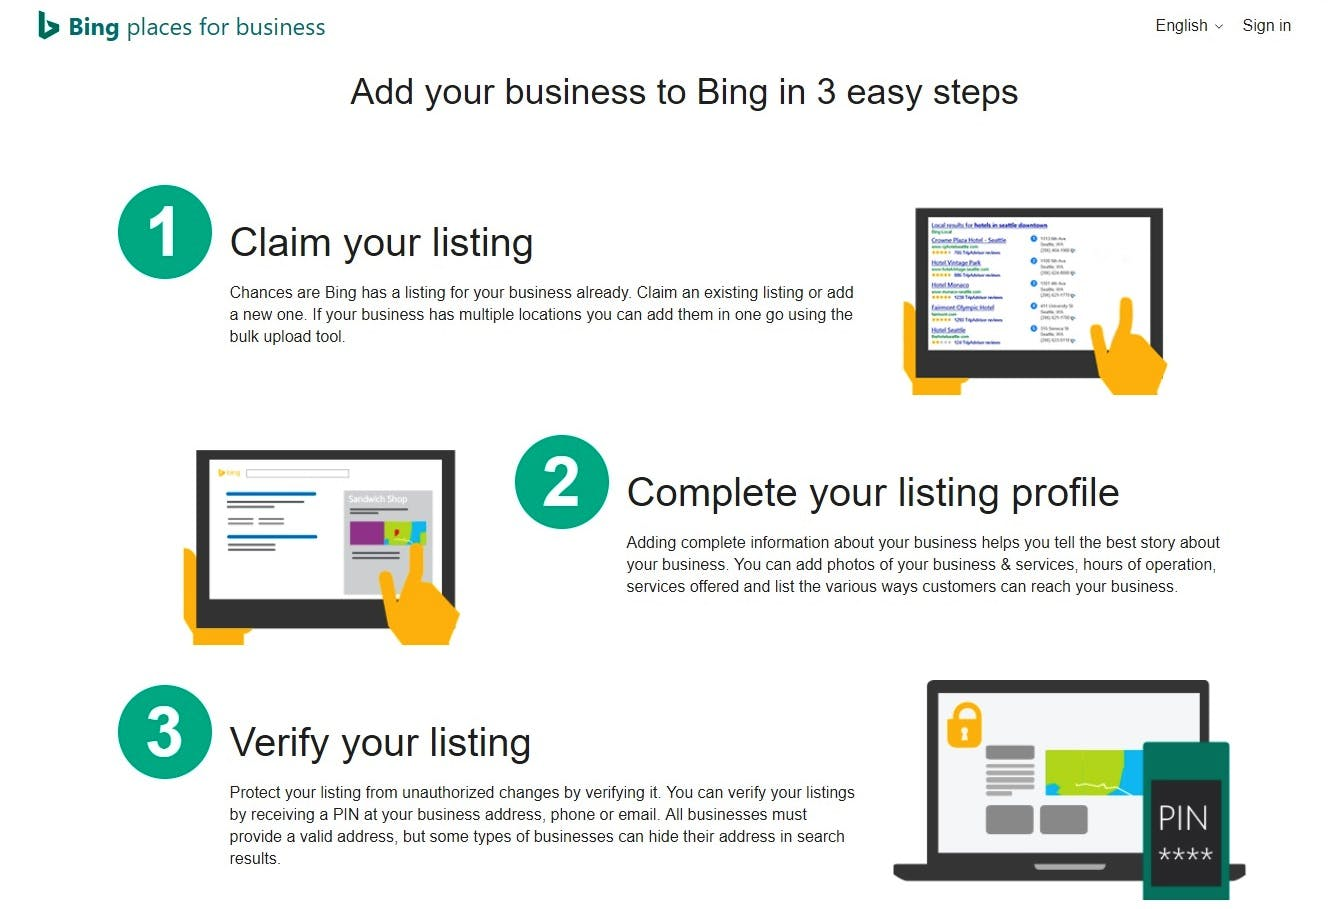 Screenshot of the Bing Places for Business homepage explaining how to add your business to Bing.